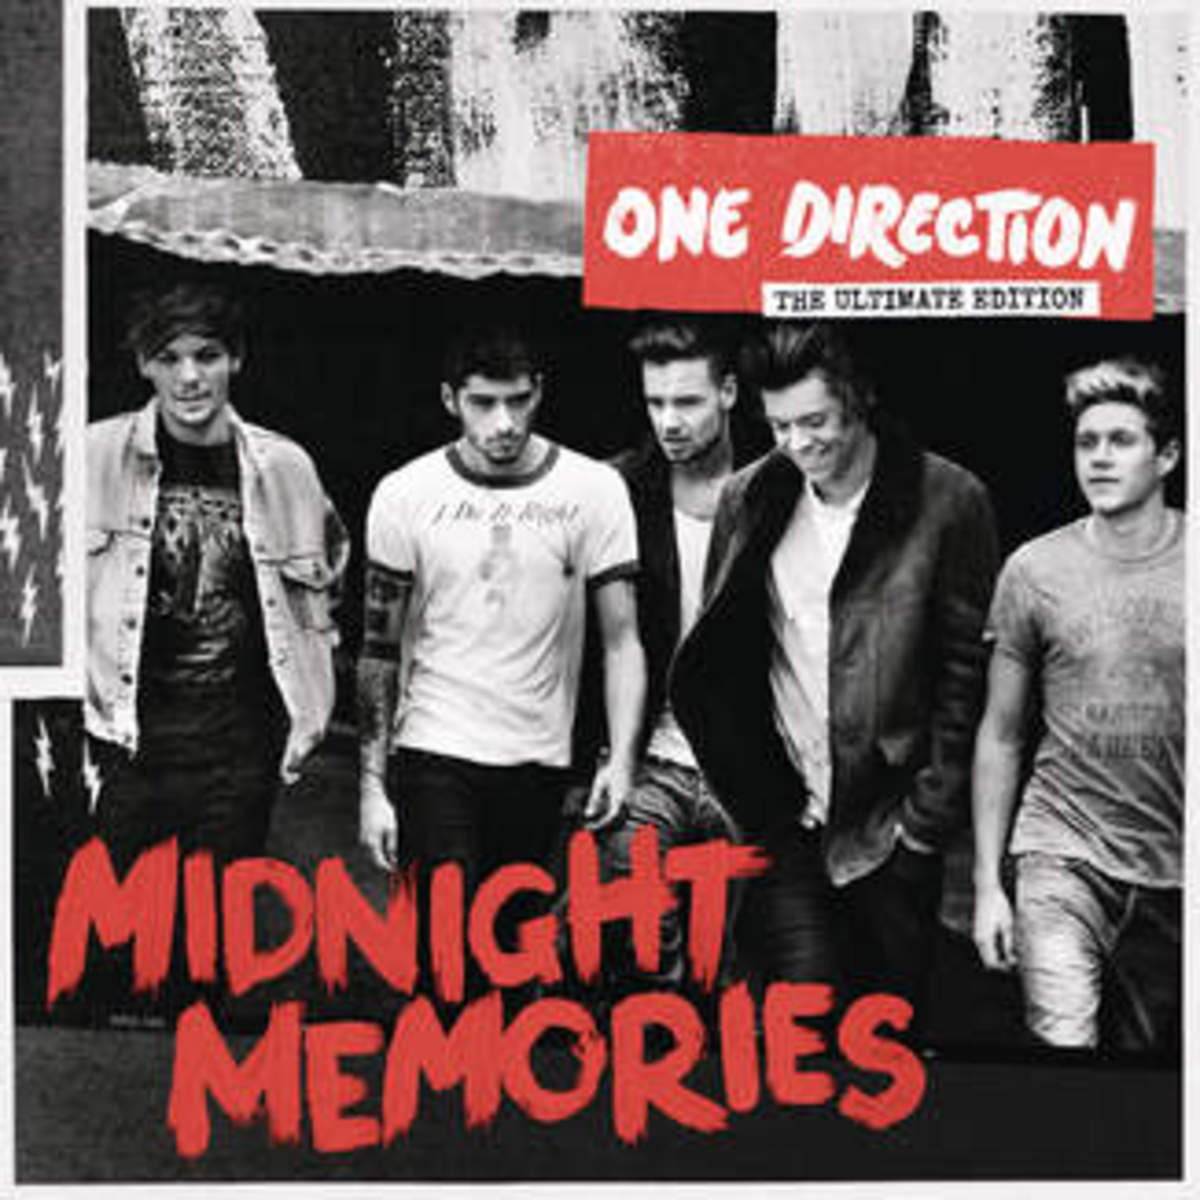 This is the third album released by One Direction boyband, Midnight Memories, in which people believed there was Just Can't Let Her Go